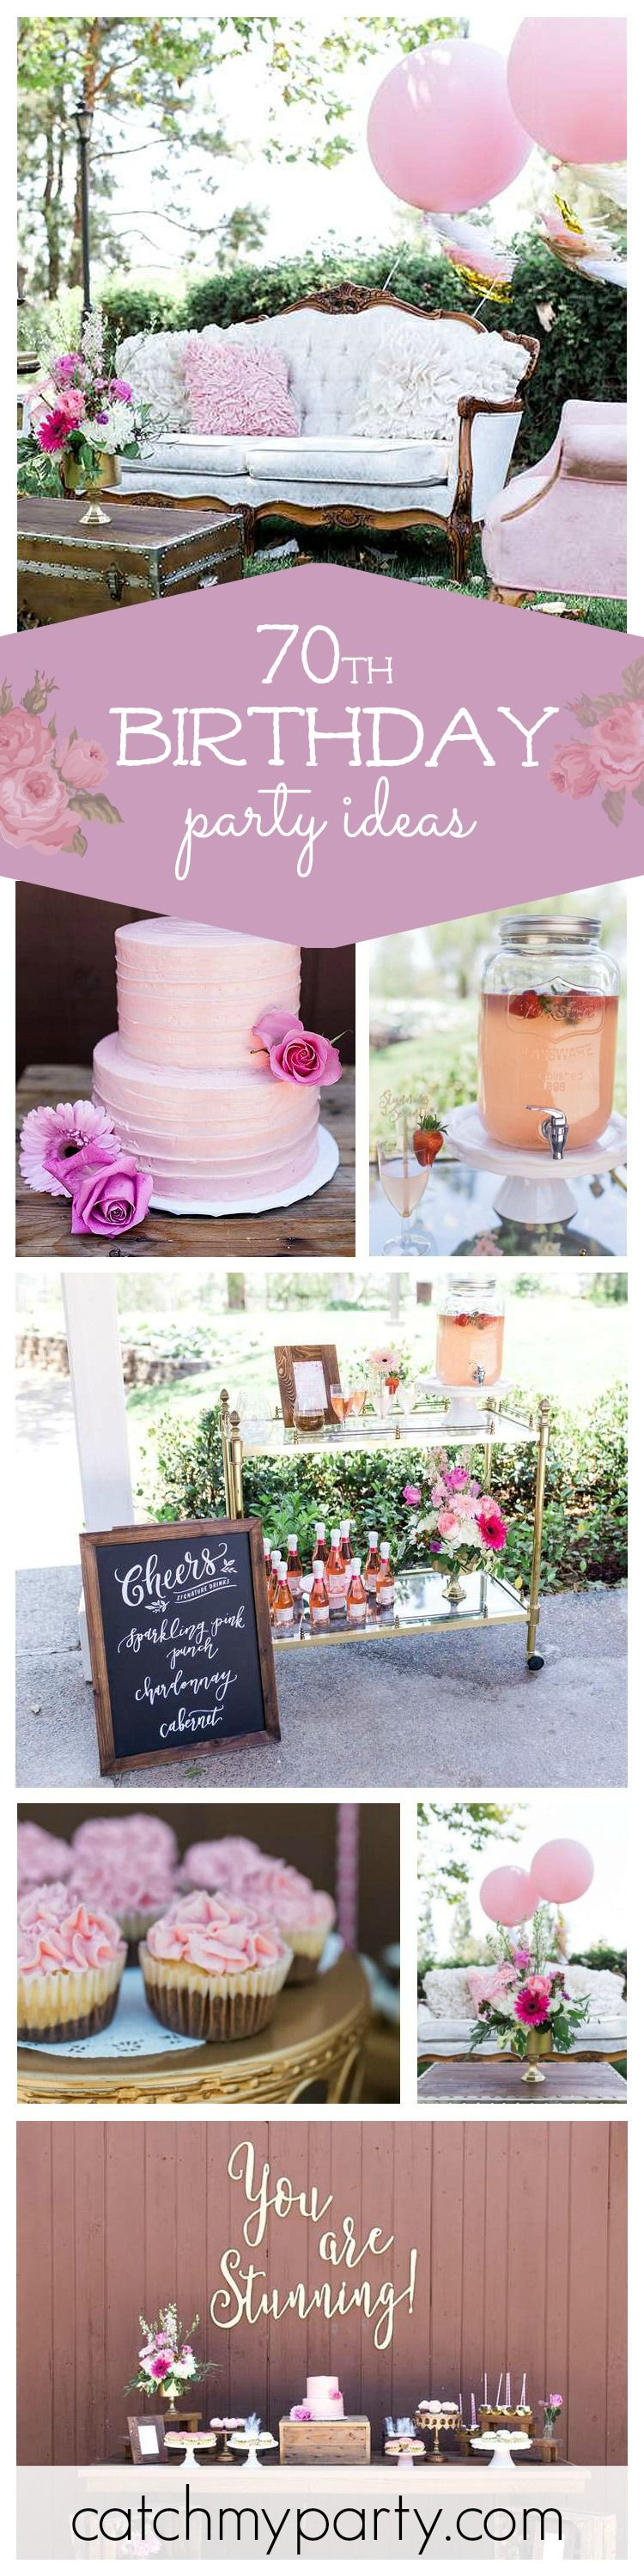 A Stunning 70th Birthday Garden Party With So Many Ideas Gorgeous For Hosting That Special Mom Mother In Law Or Grandmother